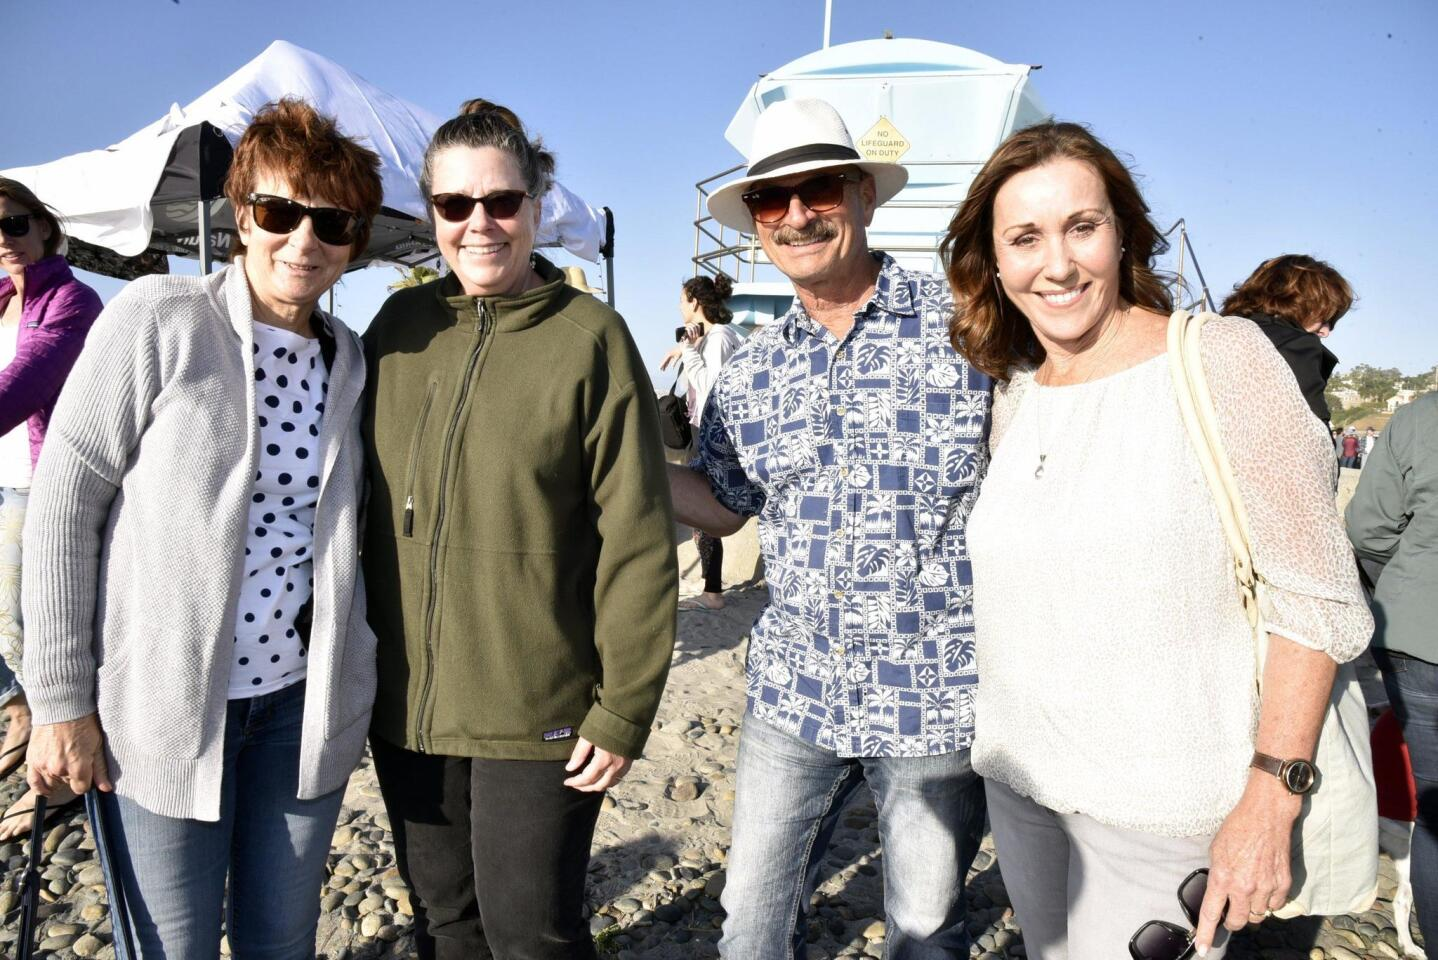 Beach Party unveils new name of San Elijo Lagoon Conservancy